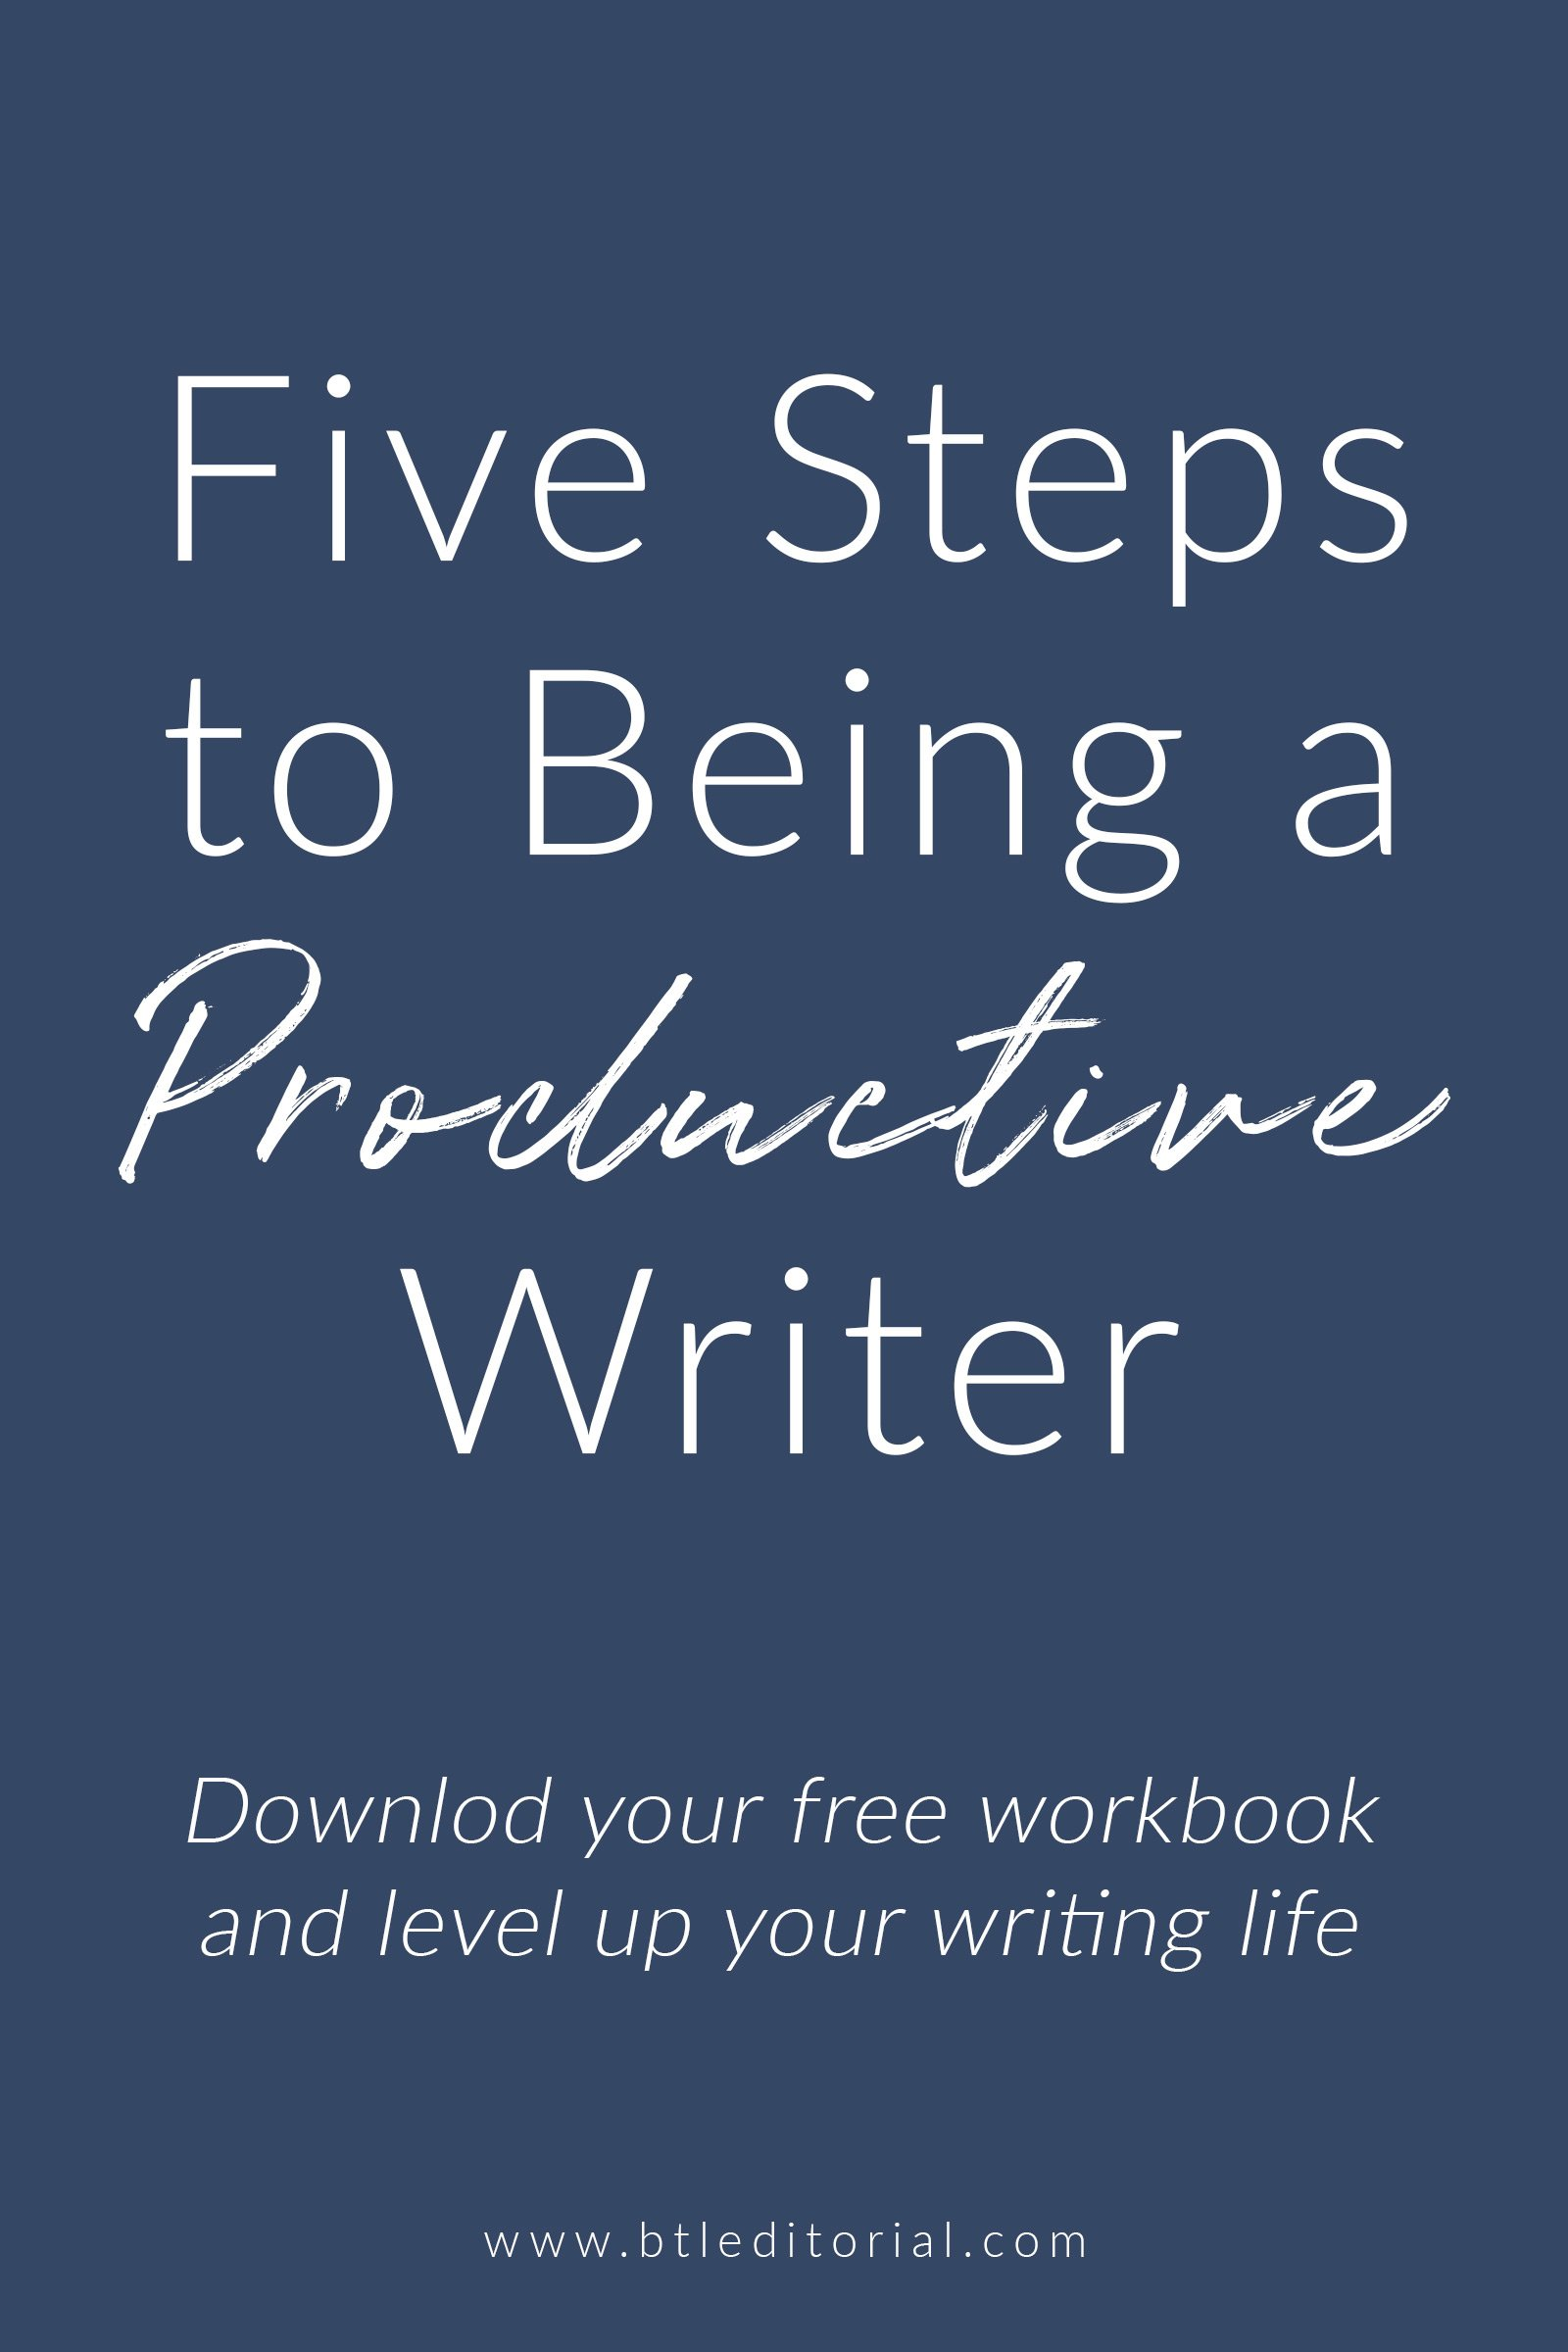 Are you ready to be a more productive writer? Download the free writing workbook to increase your productivity, manage your time, and conquer your writing goals.